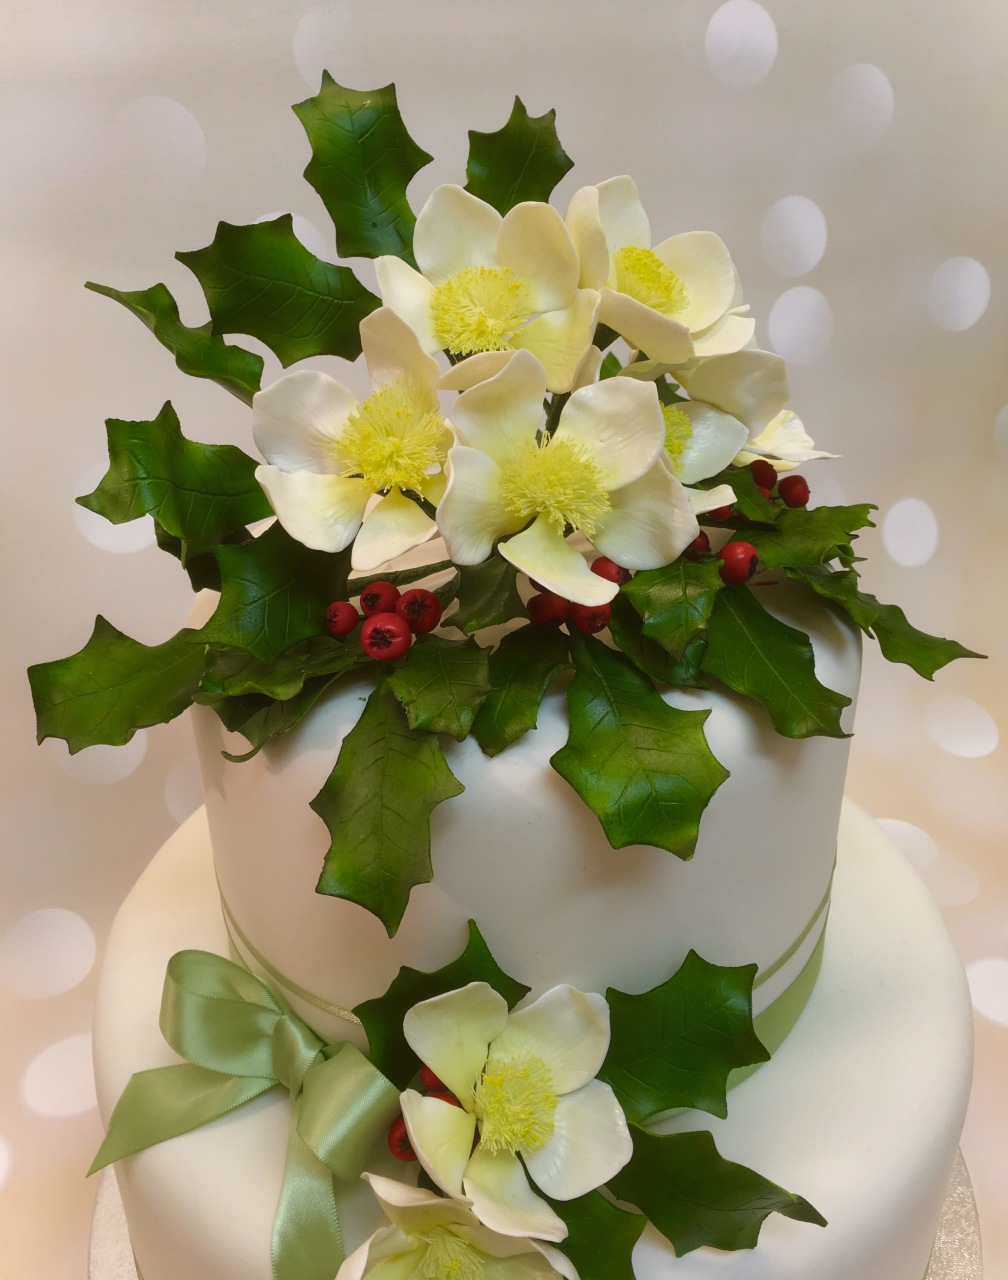 Christmas Rose and Holly Cake 2